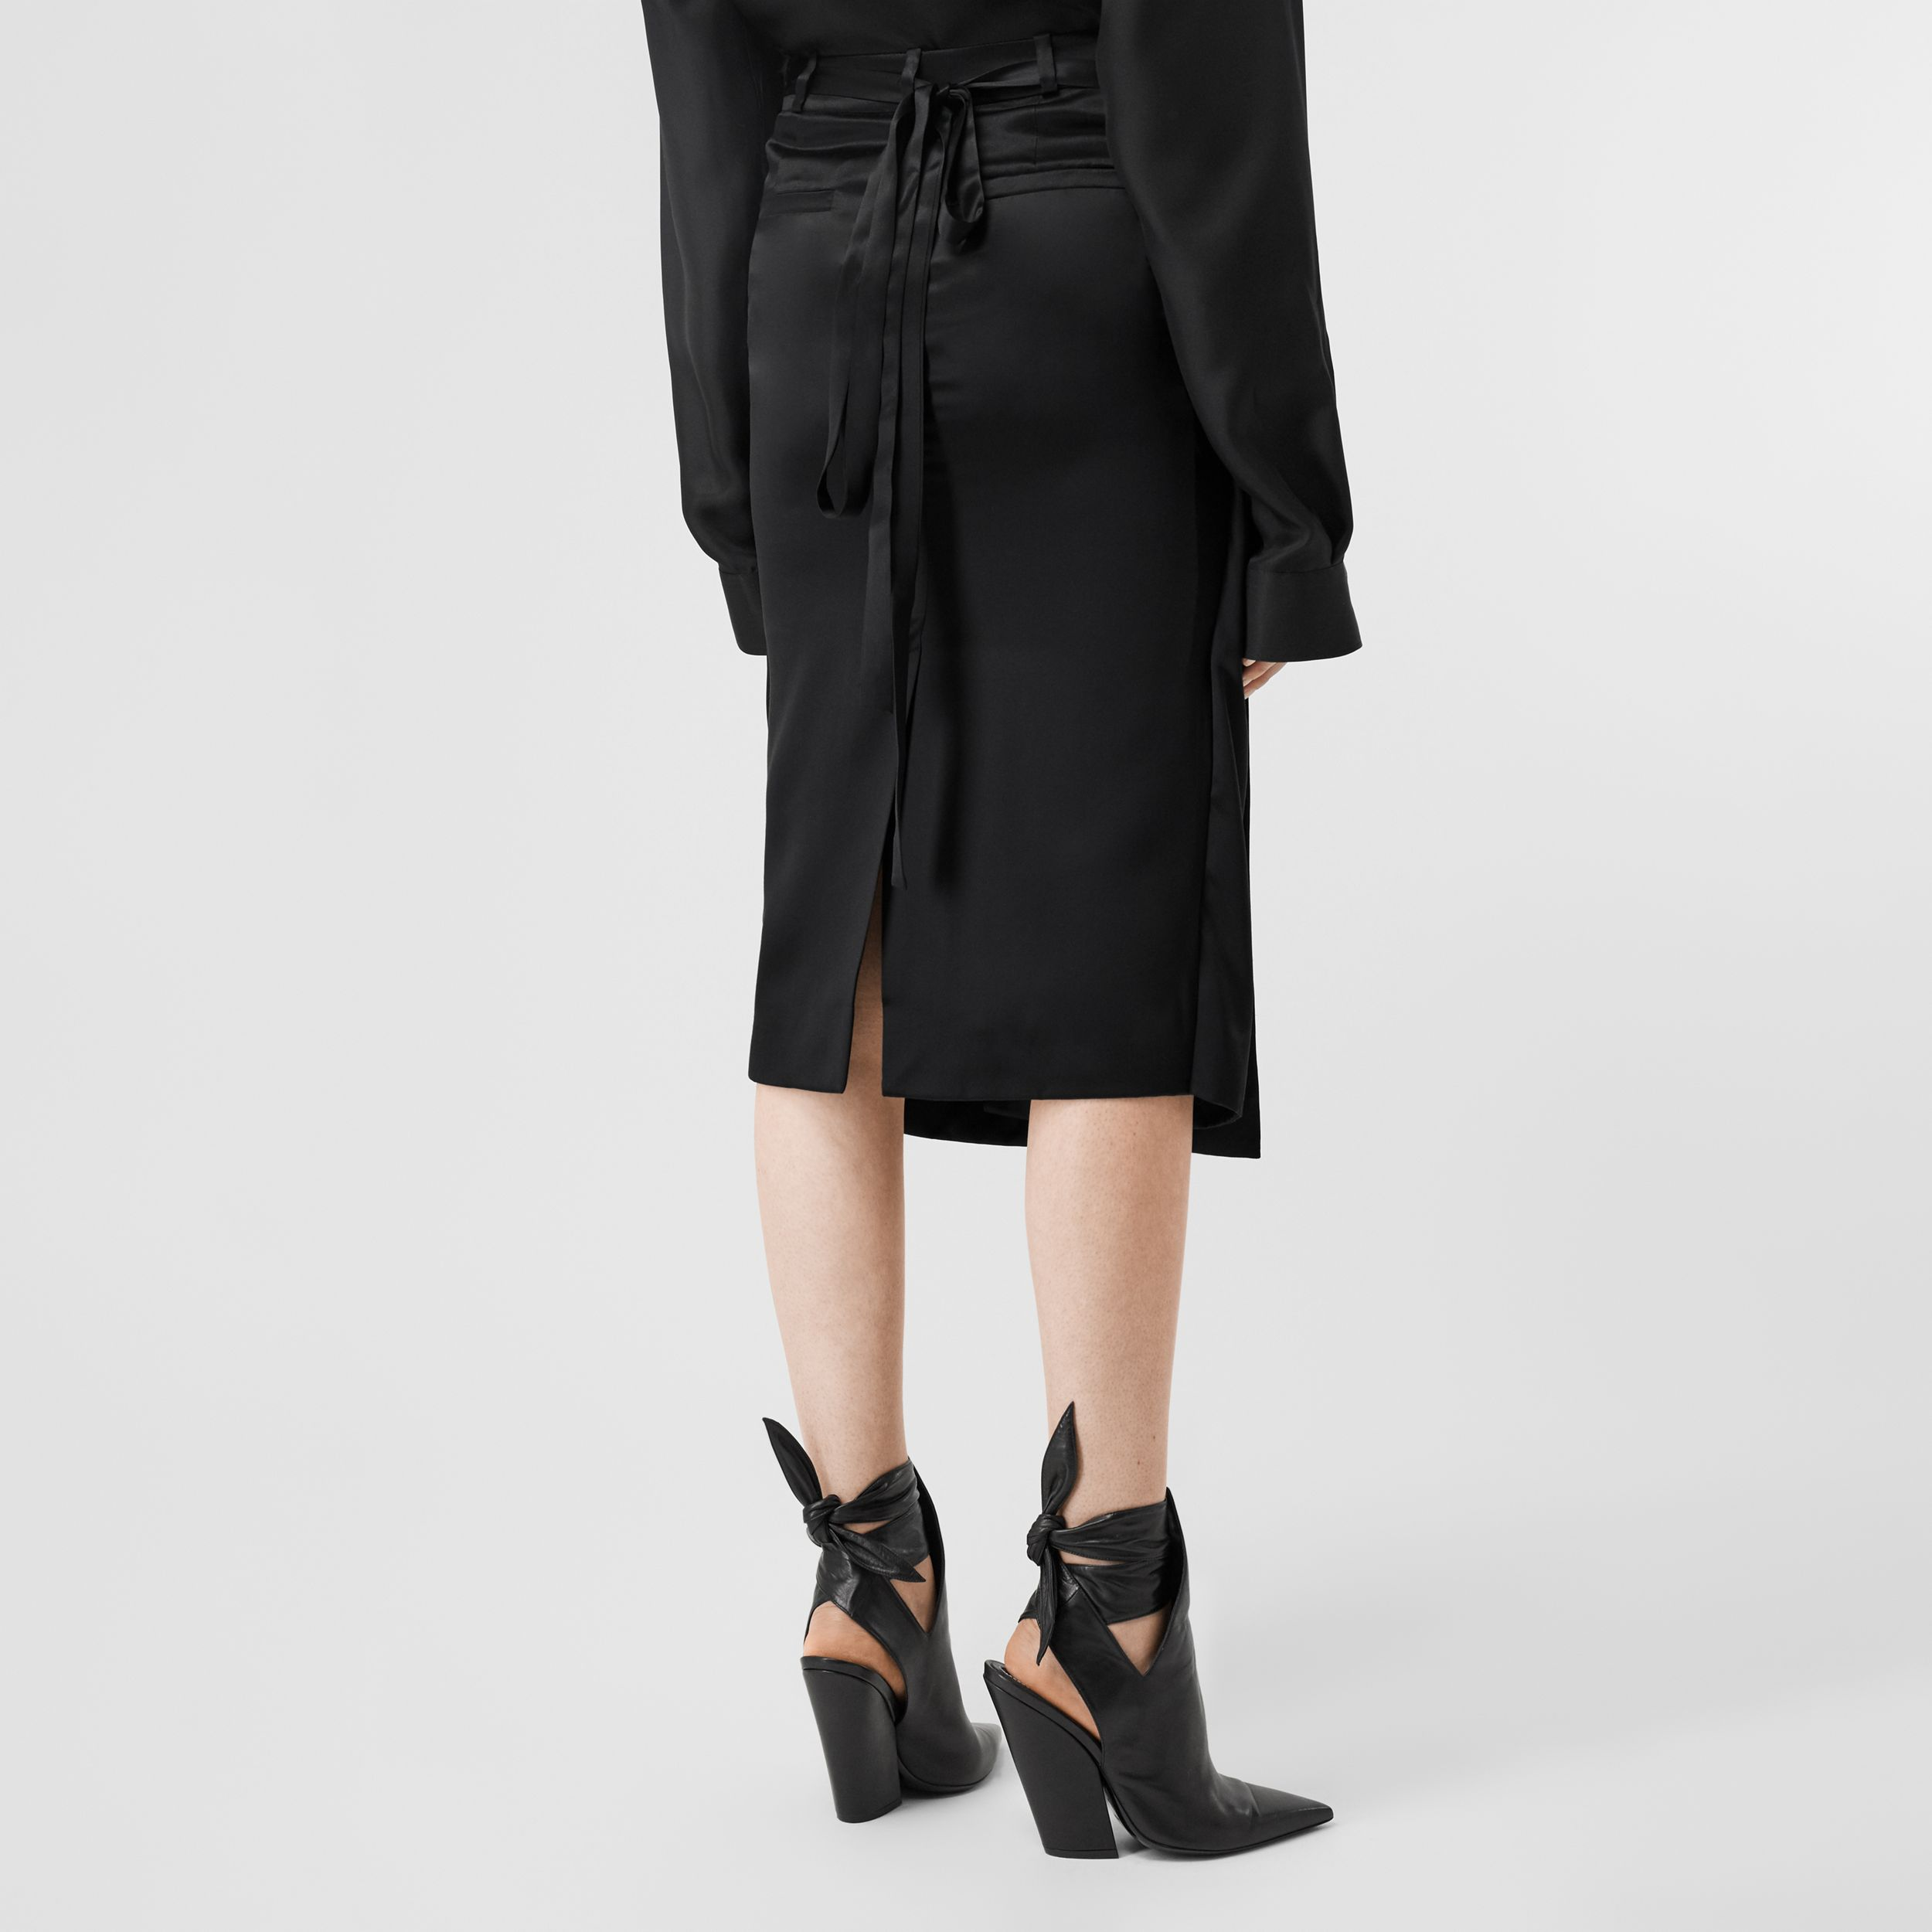 Silk Satin Foldover Skirt in Black - Women | Burberry Canada - 2